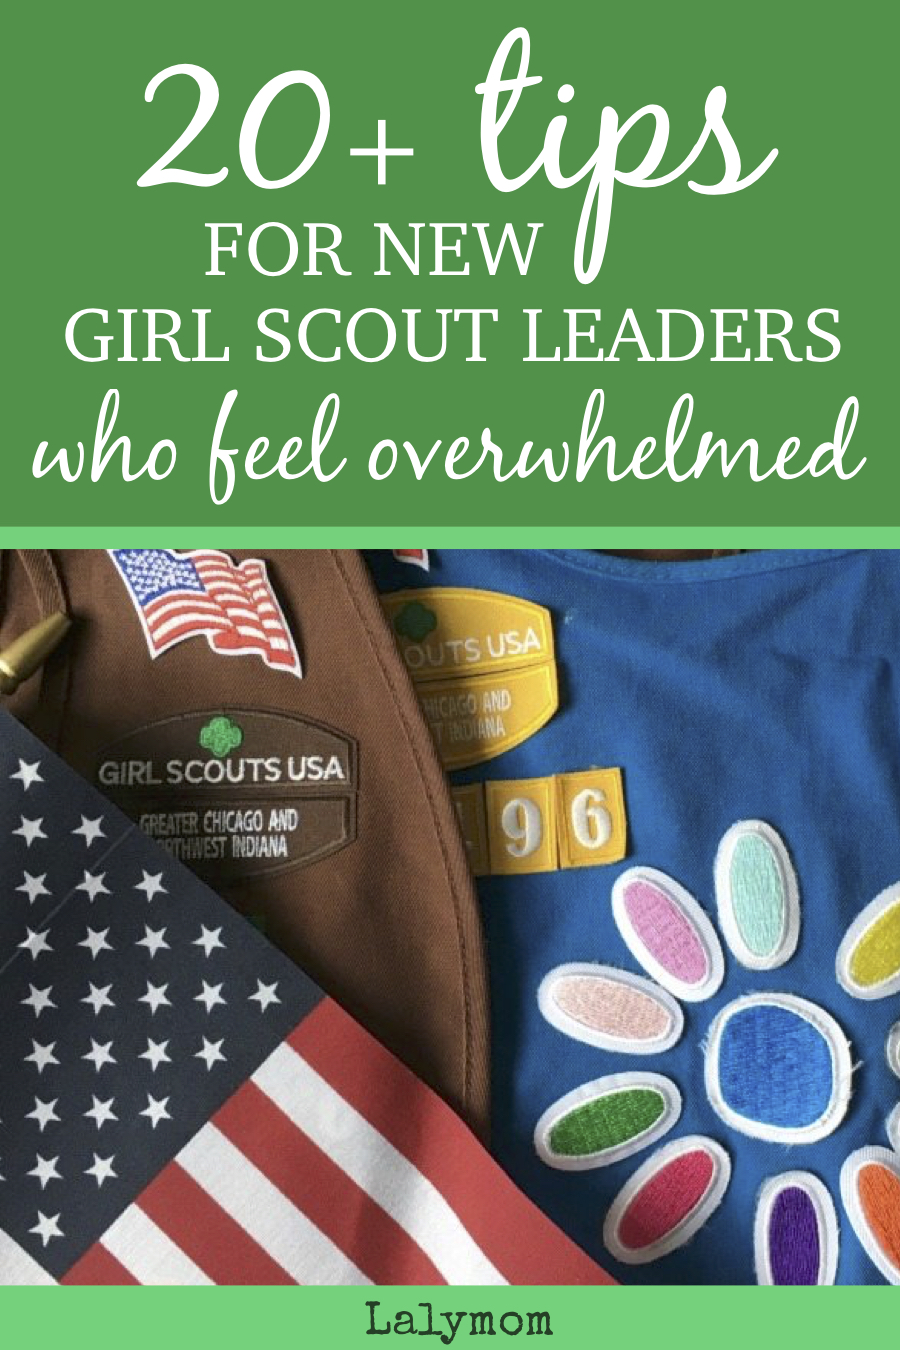 20 Tips for New Girl Scout Leaders